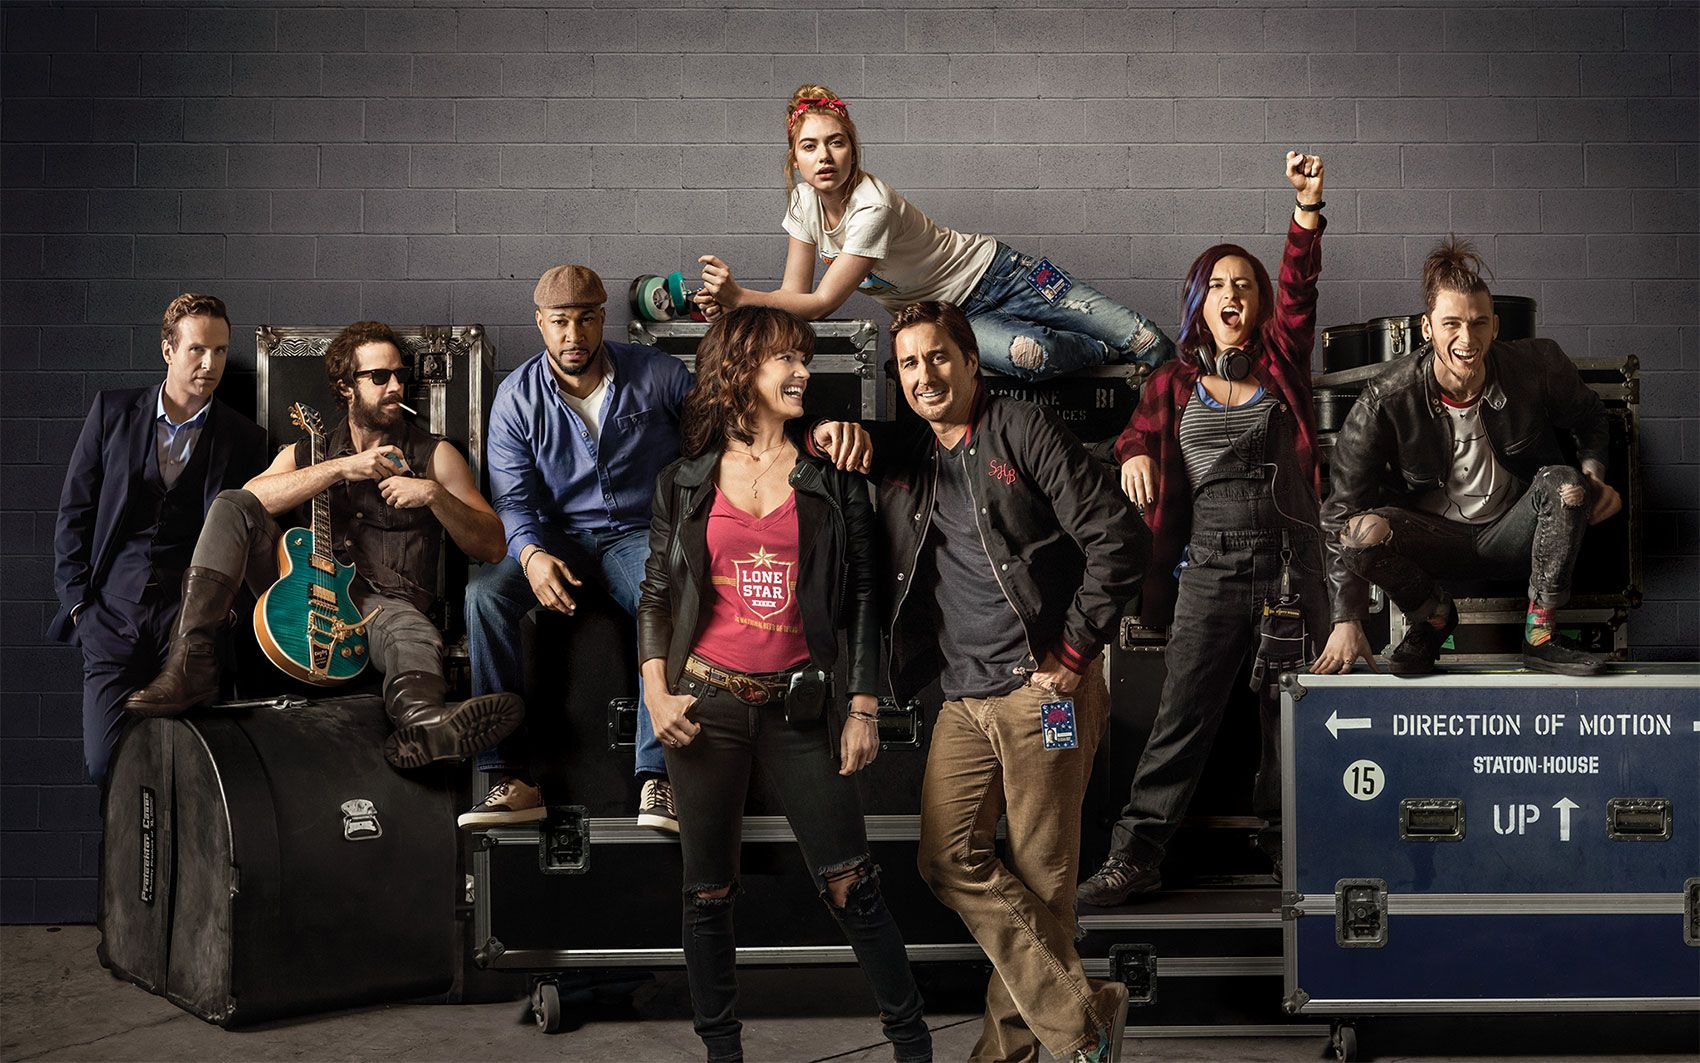 Roadies bummed they canceled this Showtime show. Relate